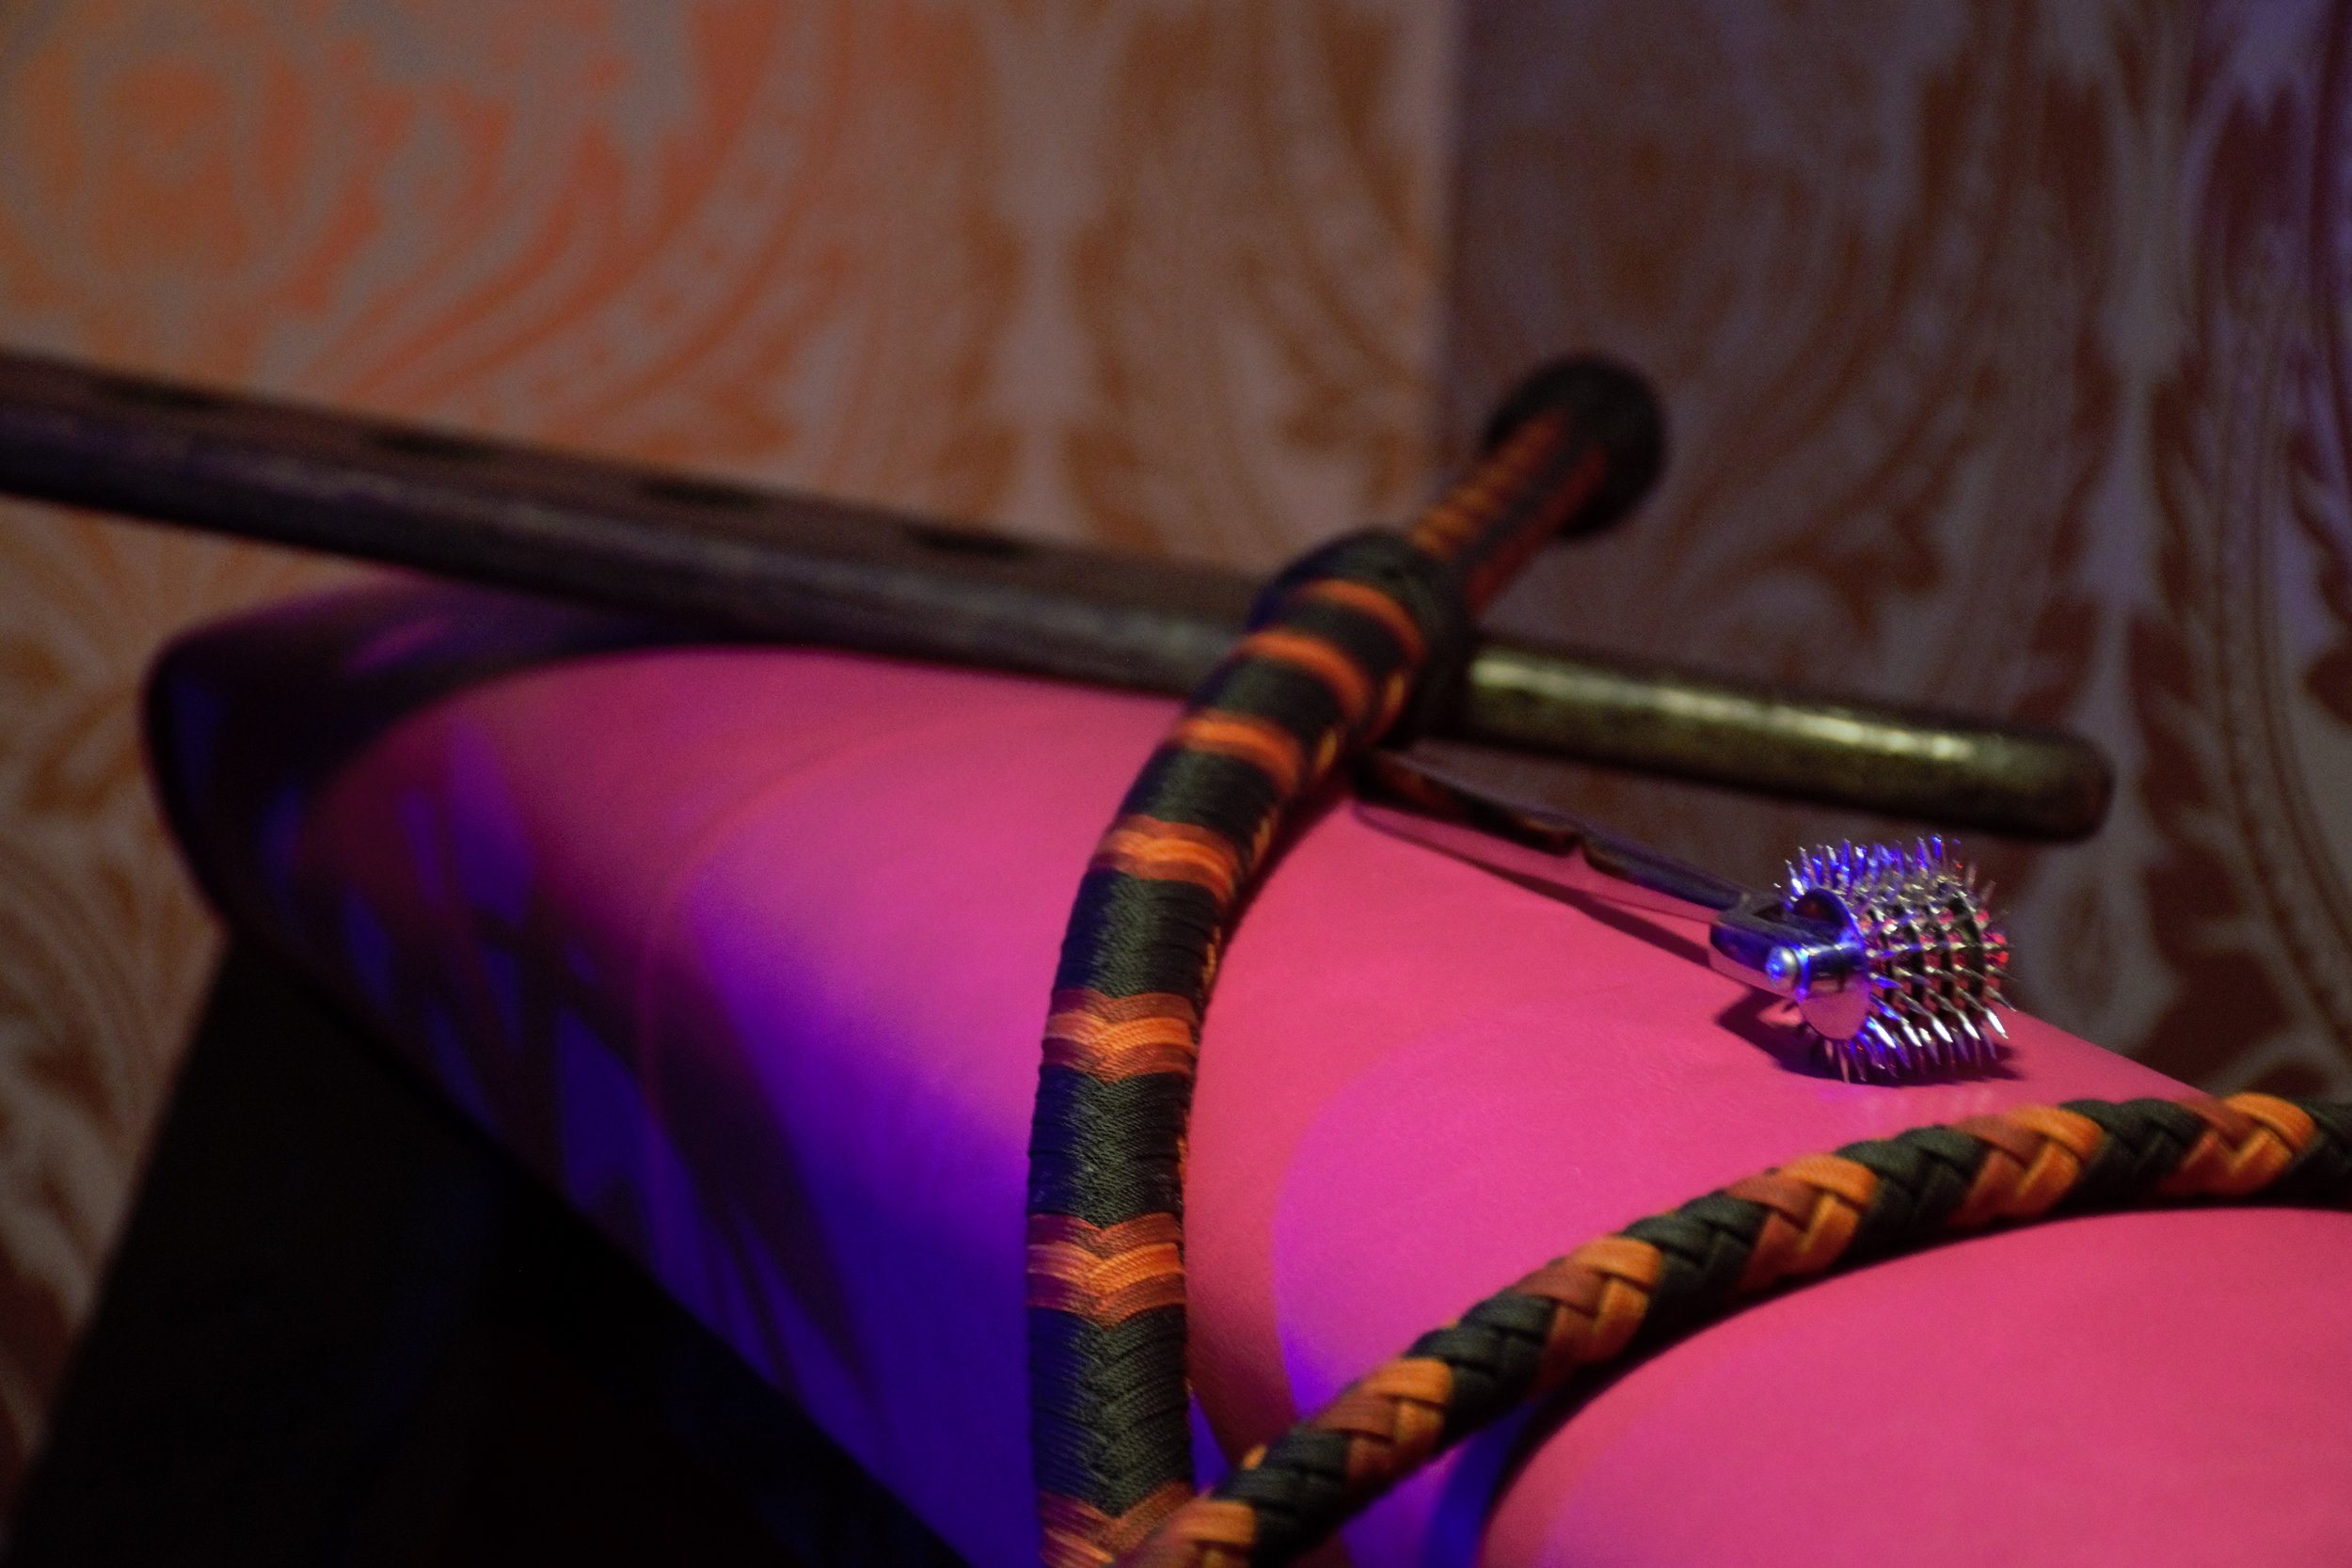 A five-tiered Wartenberg wheel gleams in warm soft light, resting atop a hot pink spanking bench next to a long nylon whip and dark wood paddle